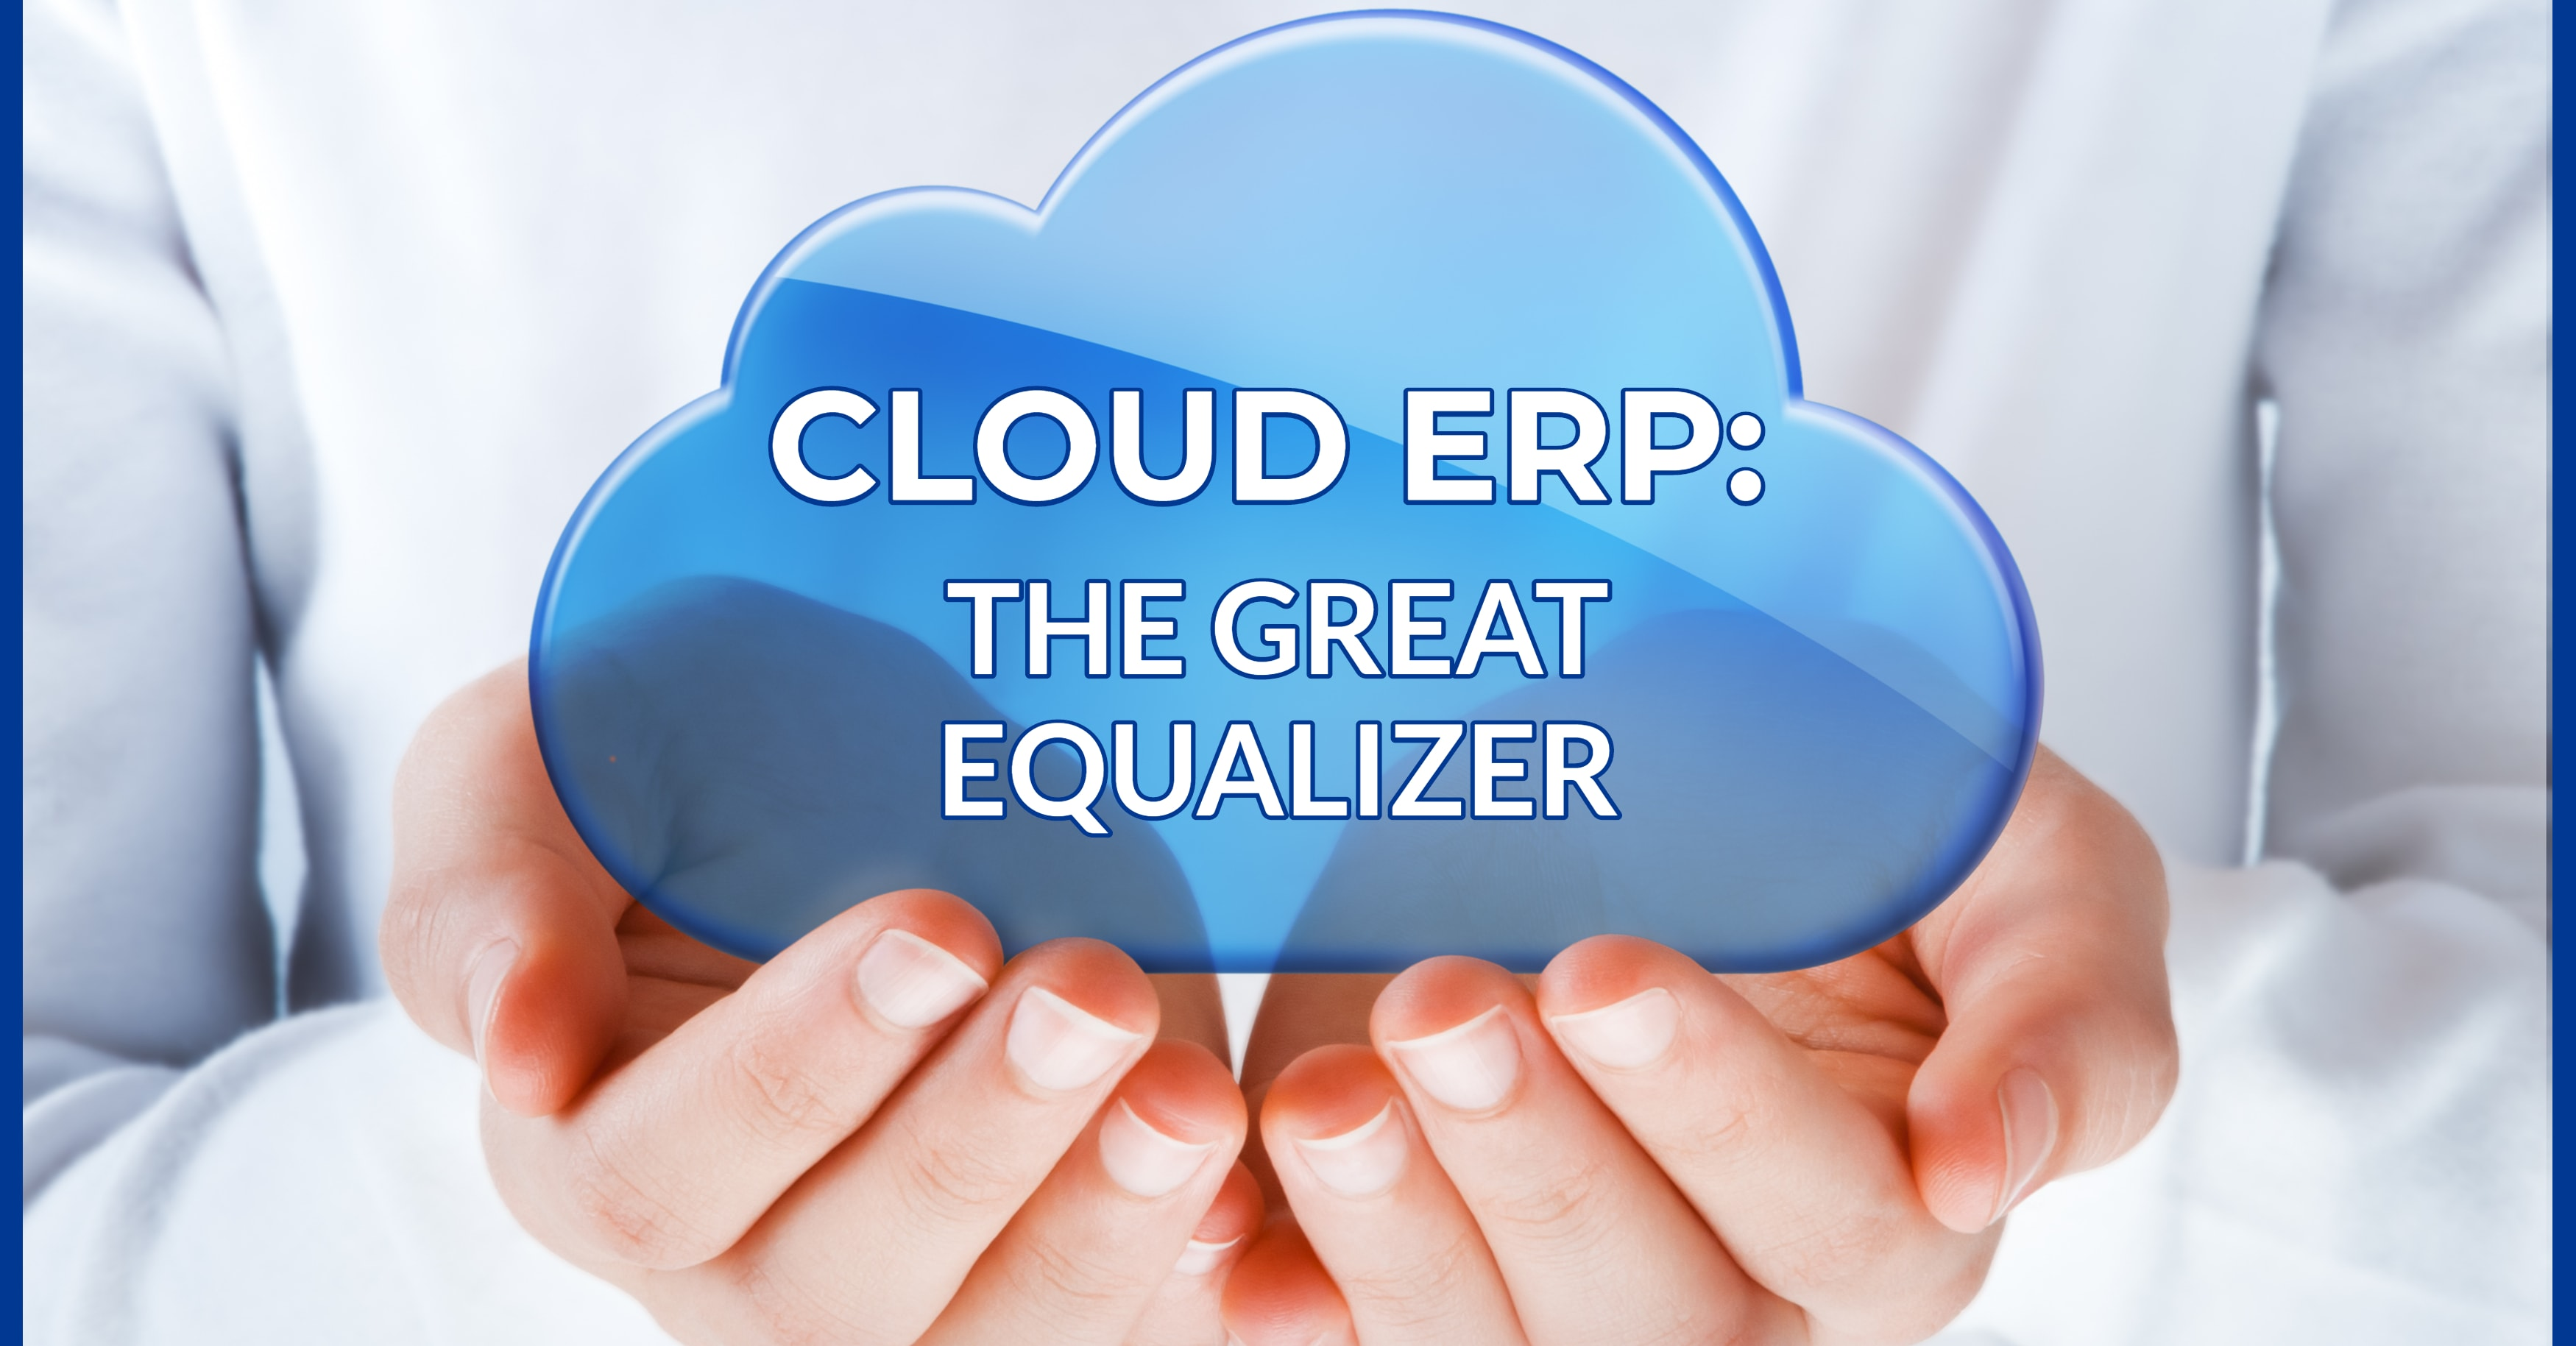 Cloud ERP Great Equalizer